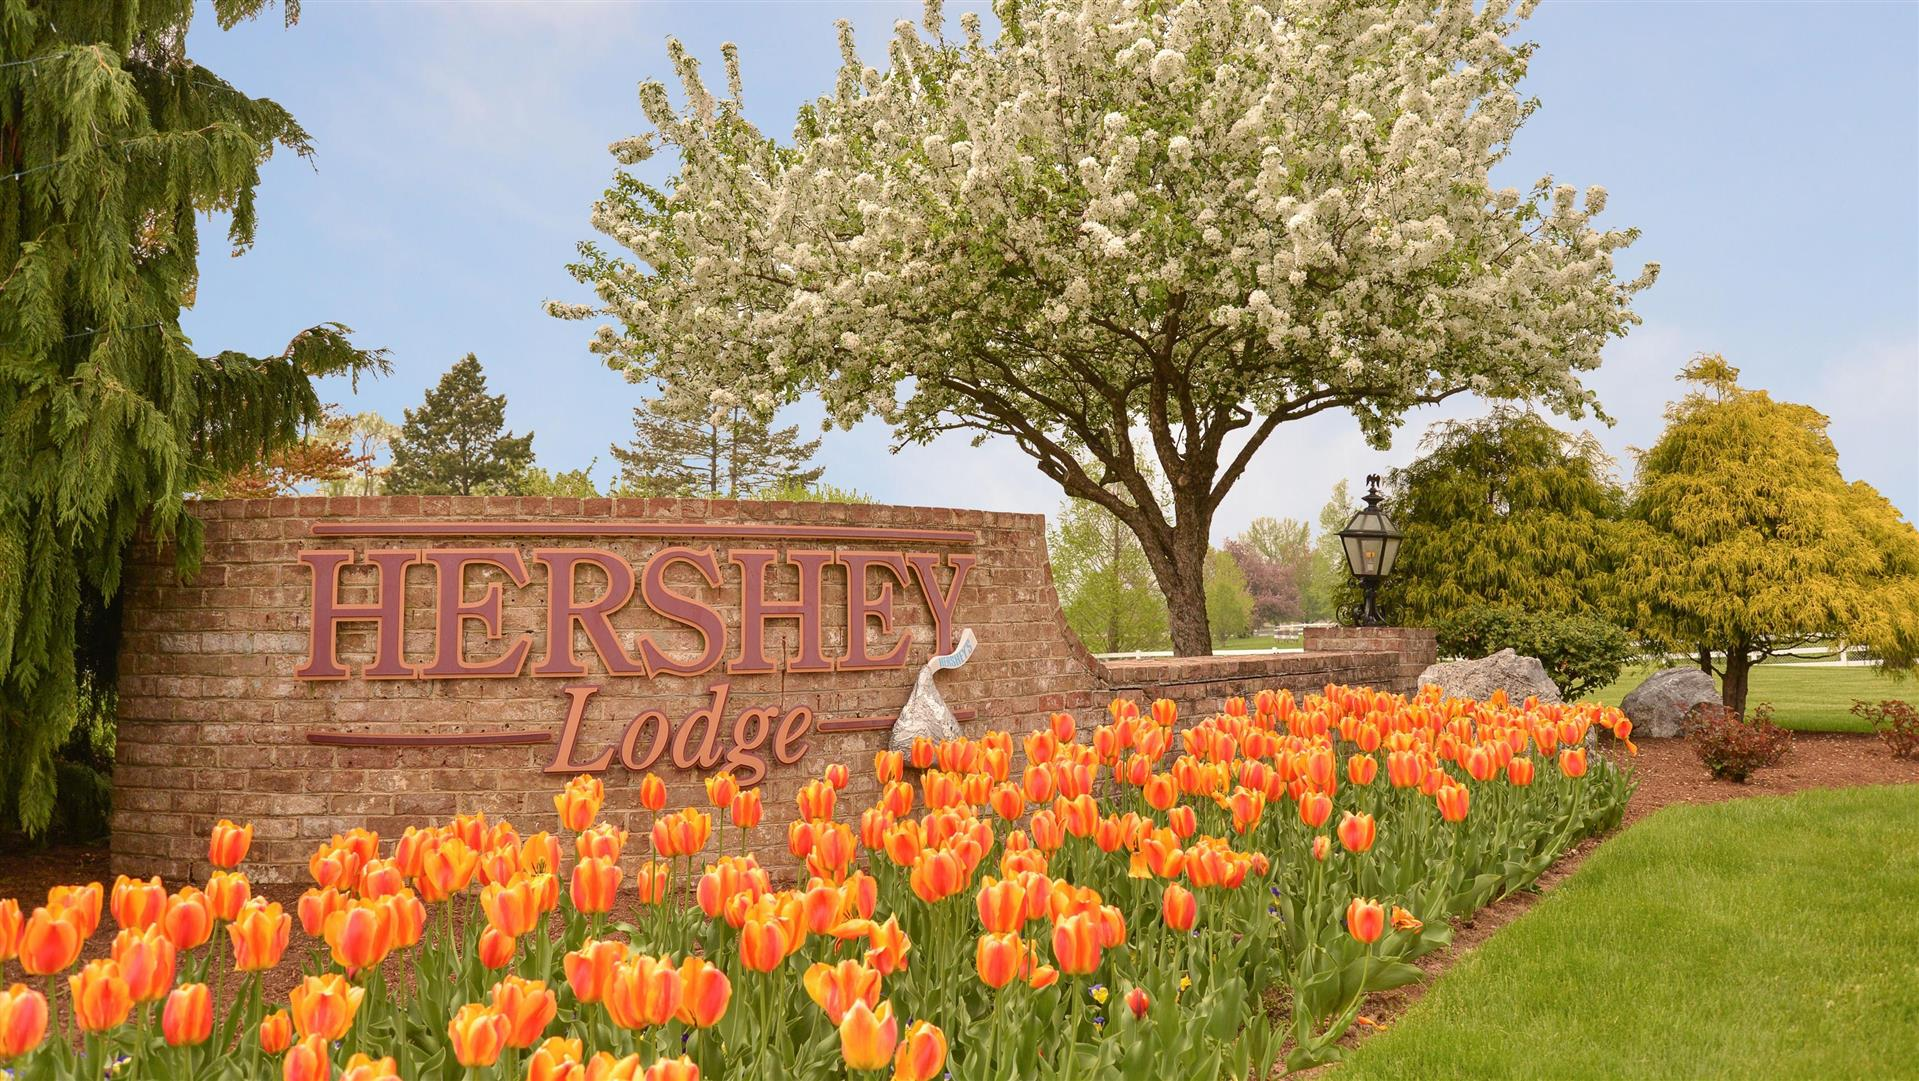 Meetings and Events at Hershey Lodge, Hershey, PA, US